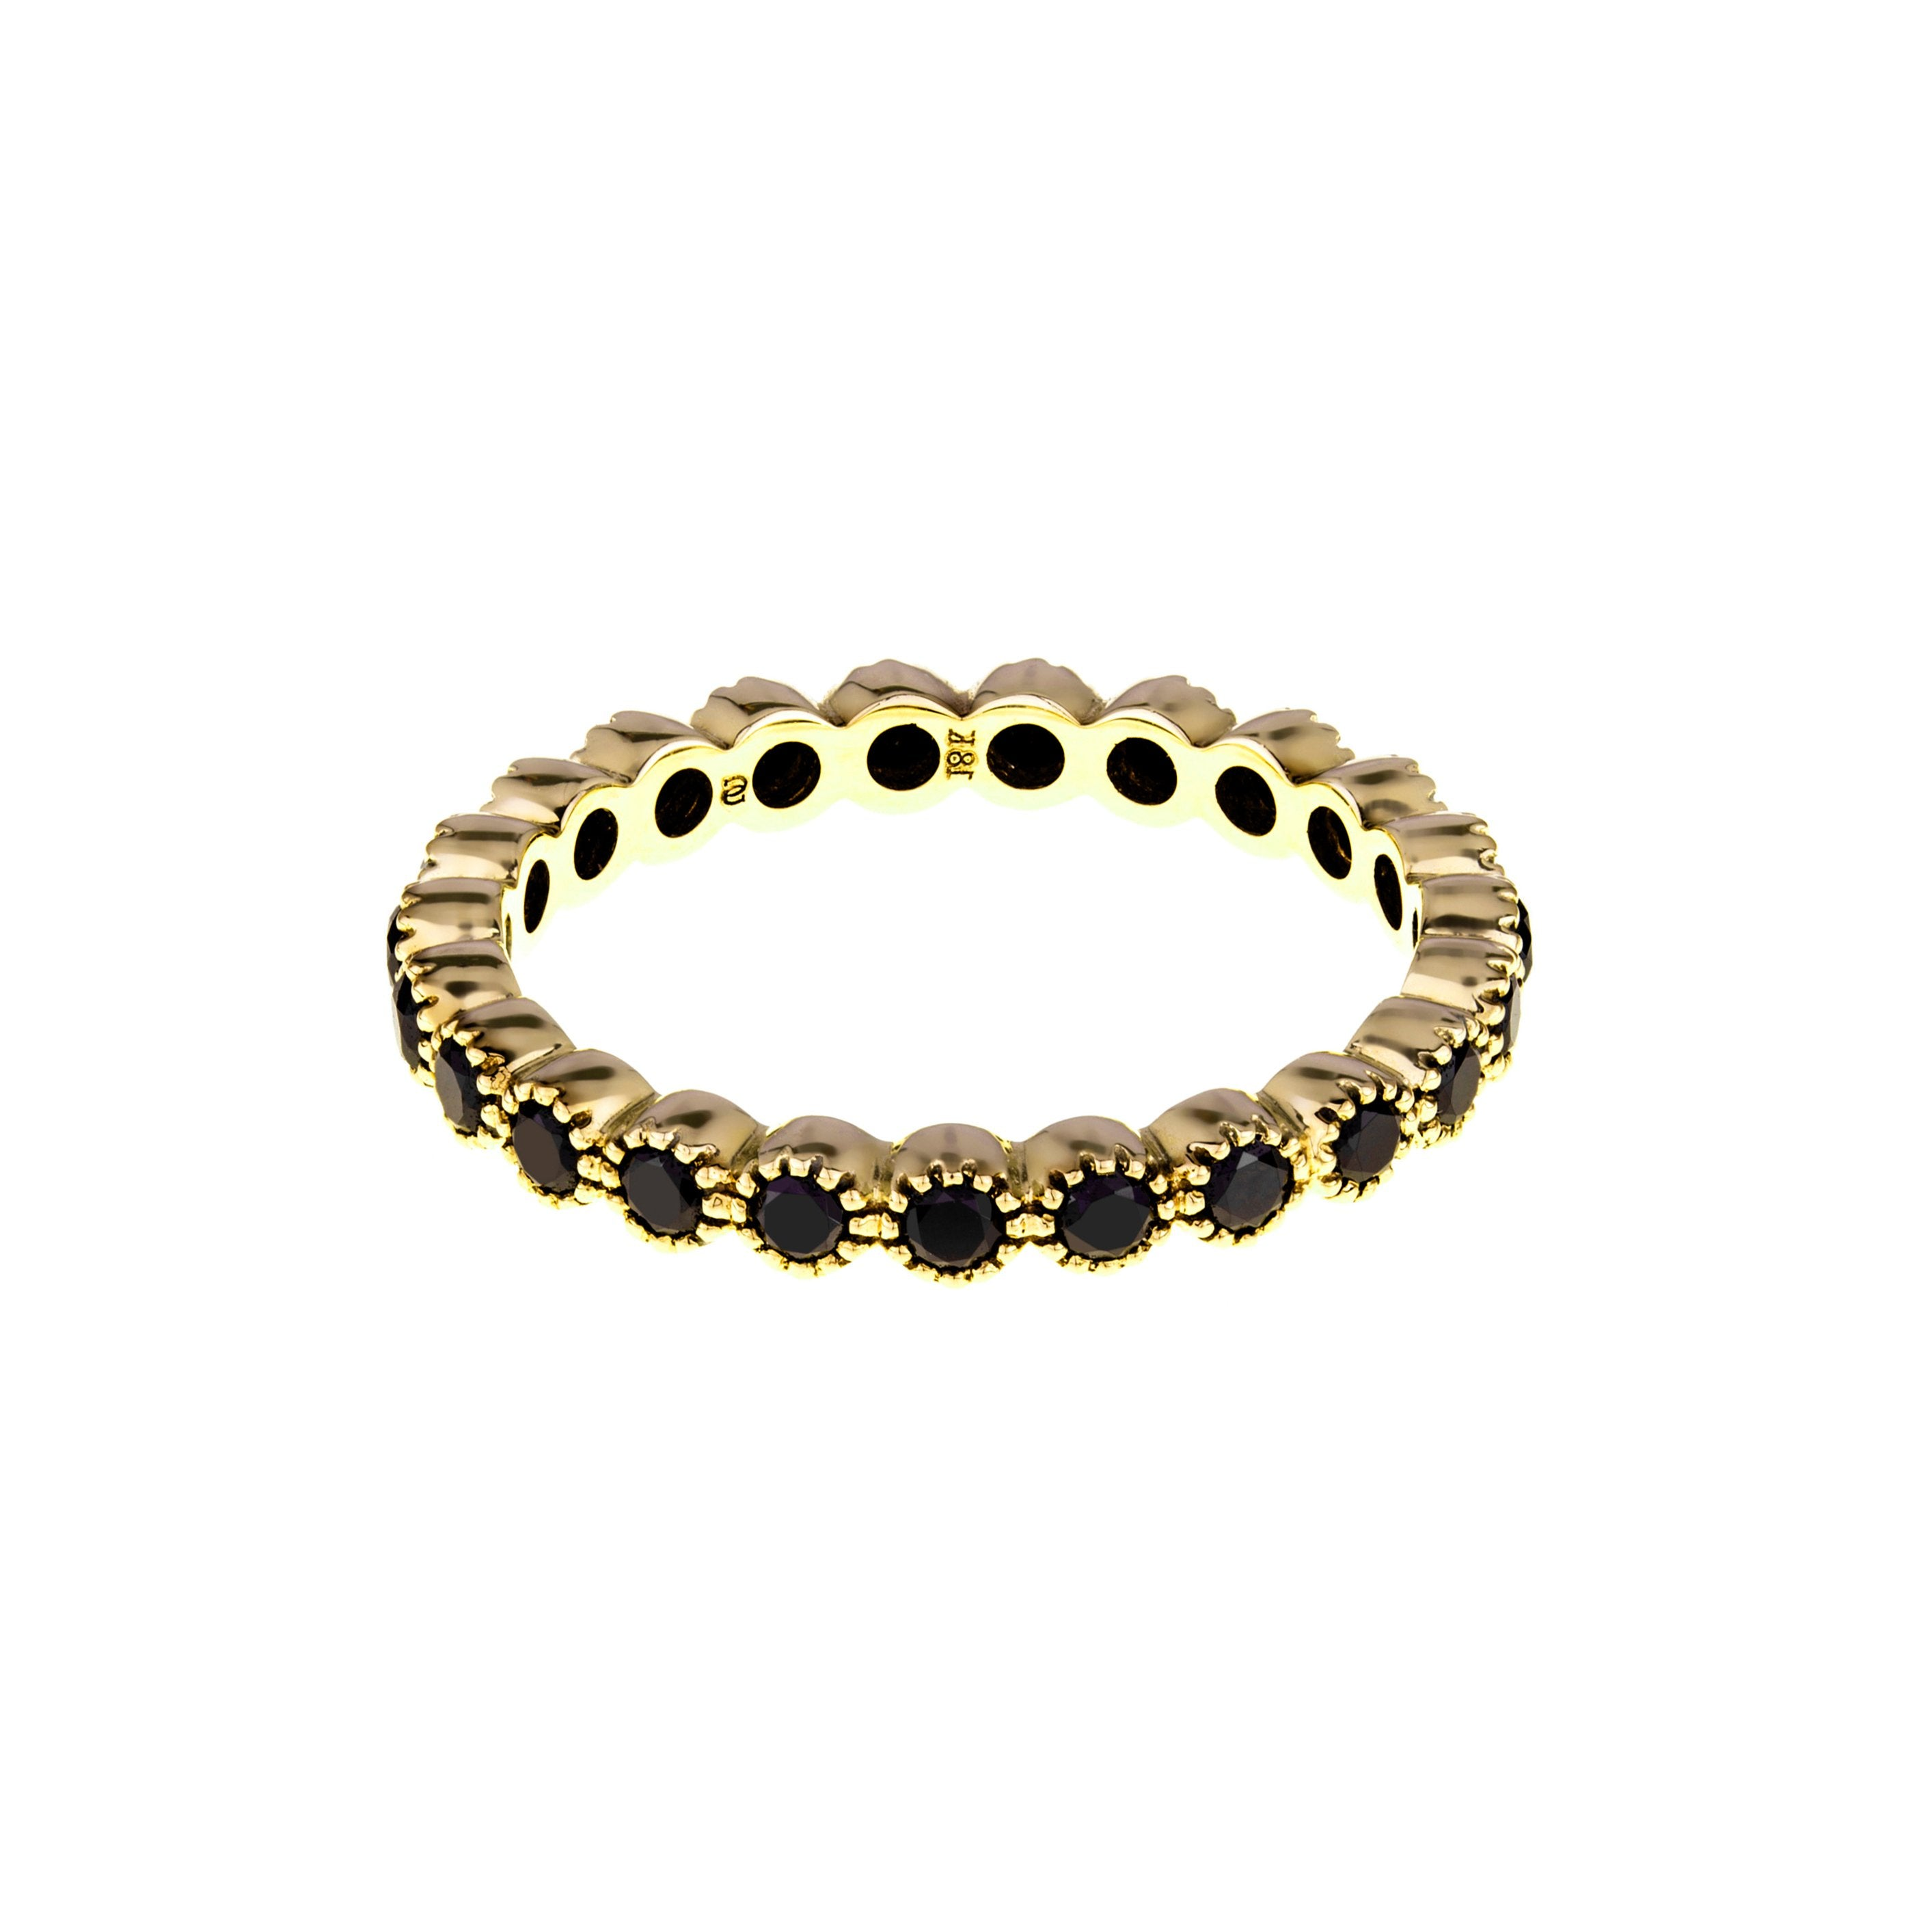 The Bezel - Black and Gold